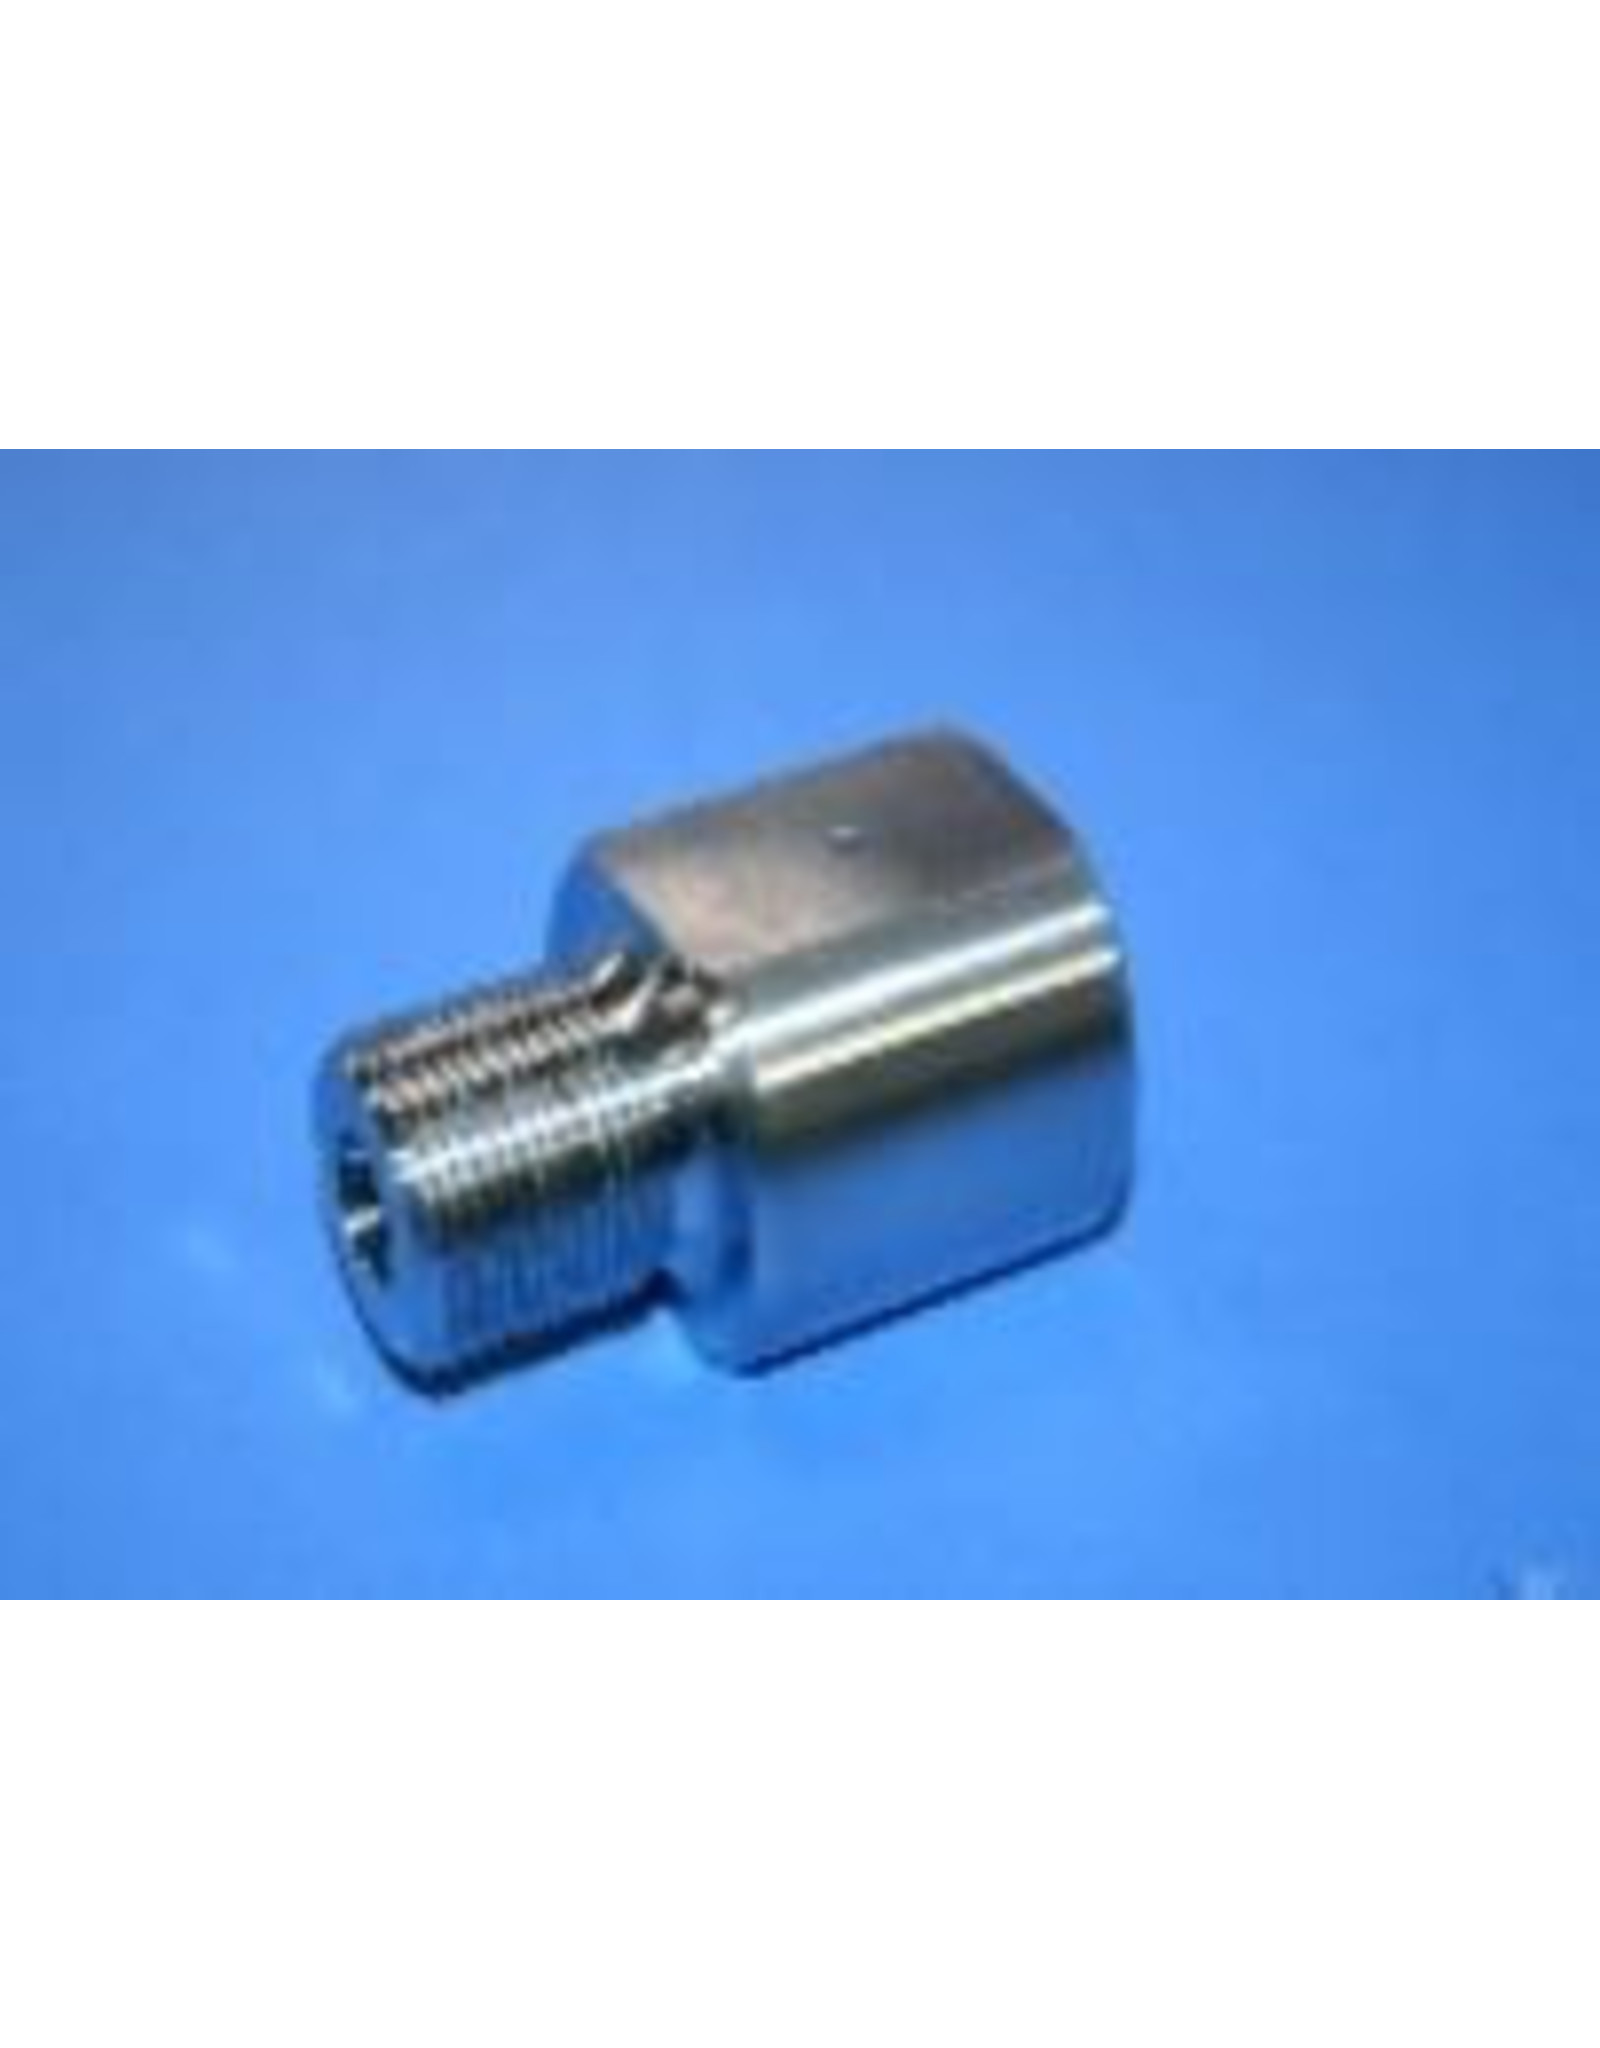 KMT Style Gland Nut, Seal Head, SL5, 100S